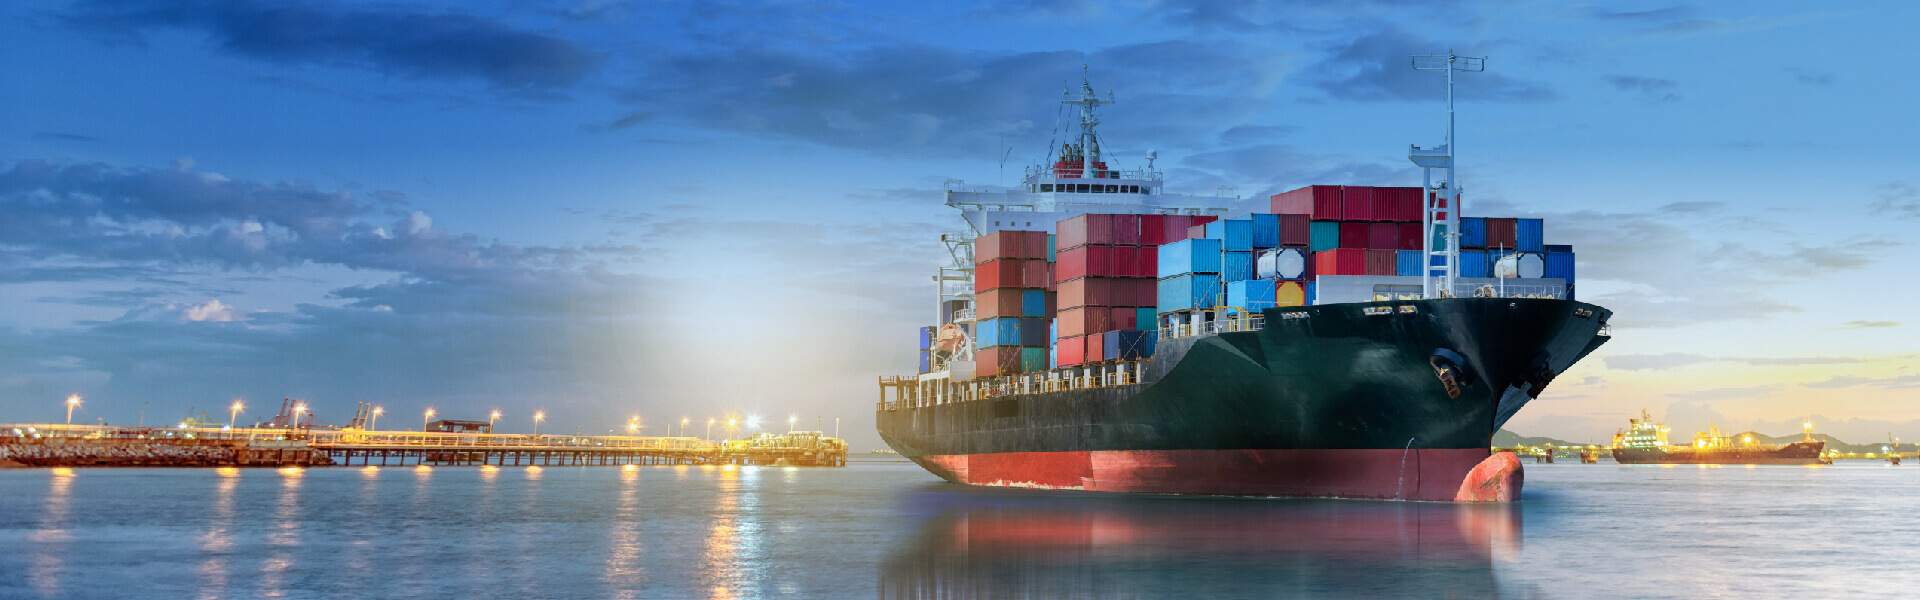 Enabling Data-Driven Port Service Cost Prediction for International Vessels With 95% Accuracy